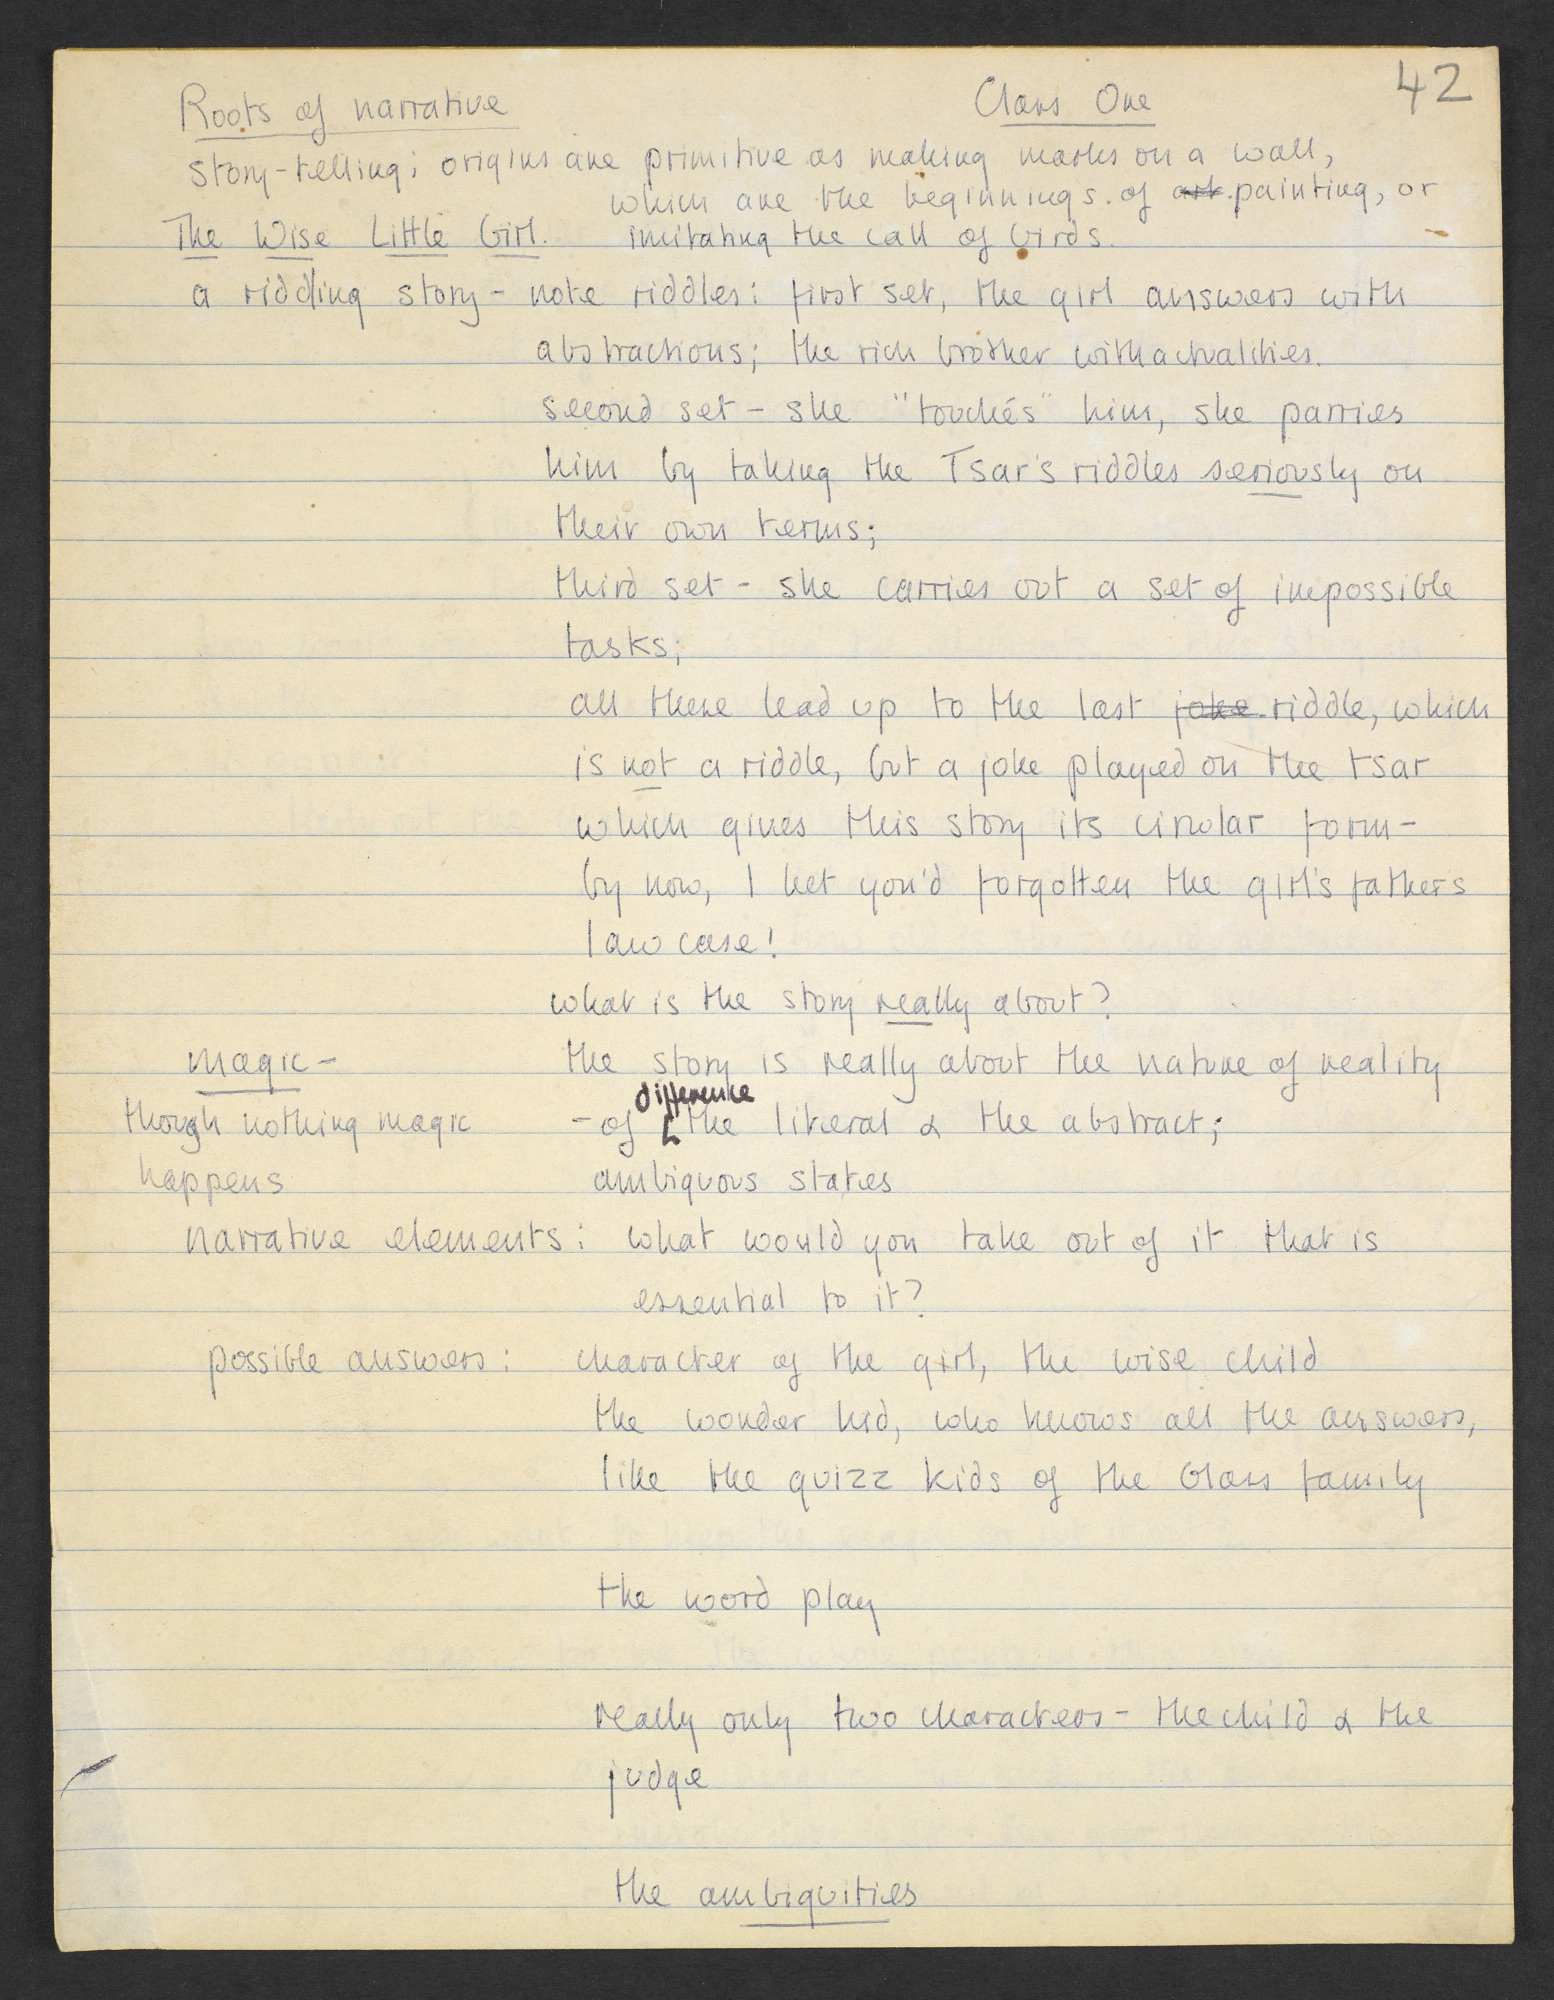 Angela Carter's manuscript notes on fairy tale material